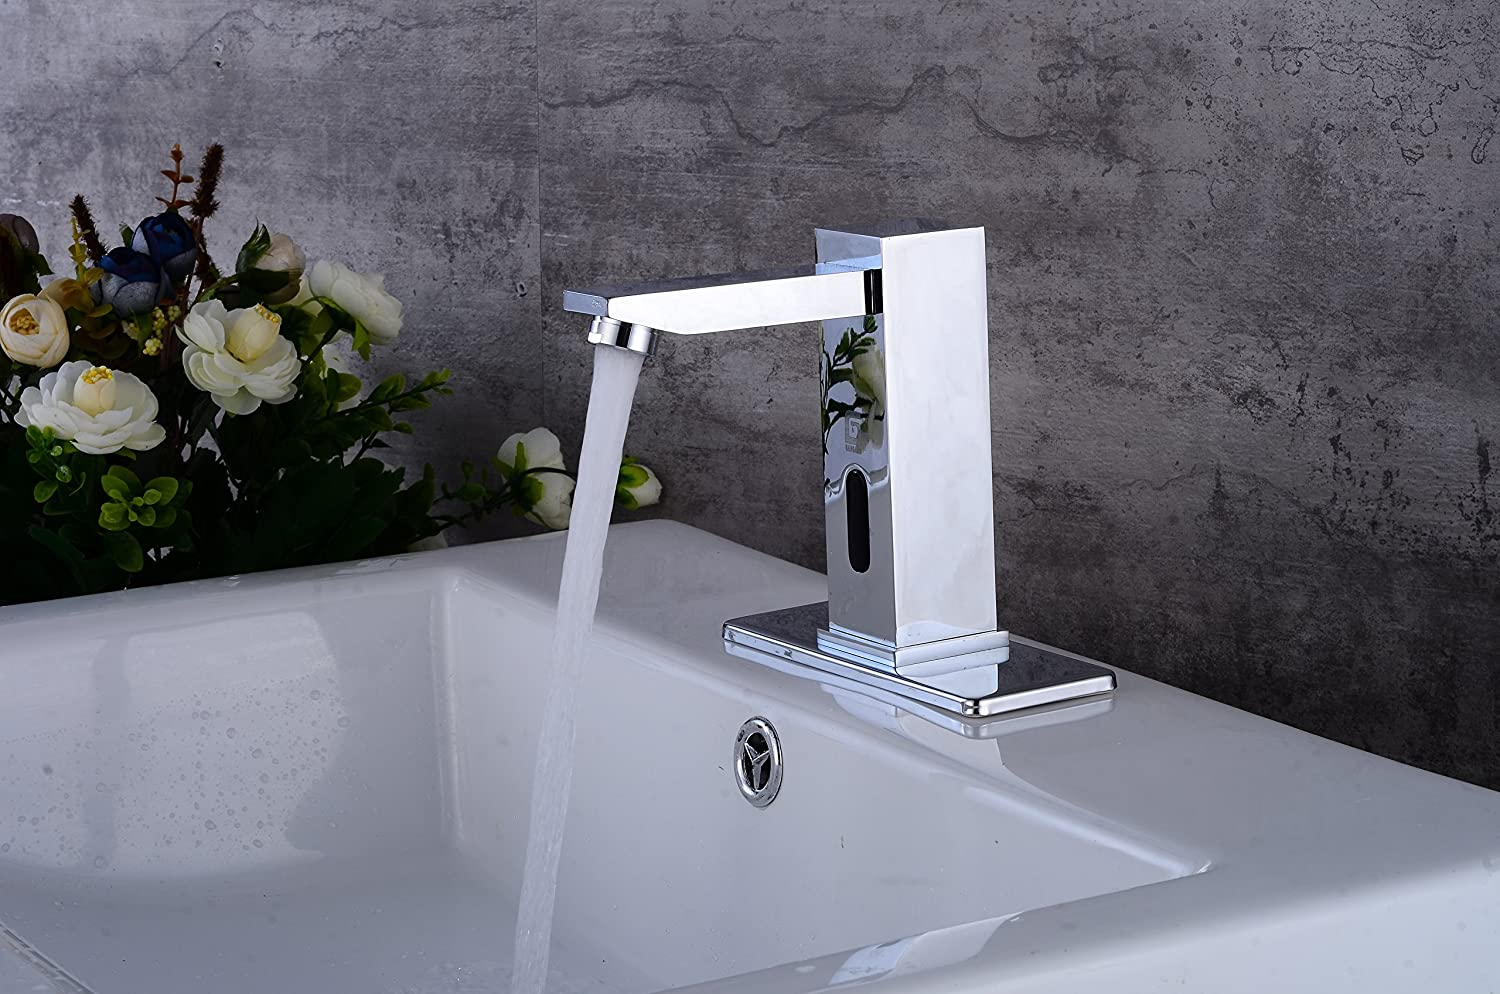 Gangang Automatic Faucet Square Body Touchless Sensor Waterfall Bathroom Sink Vessel Orb Wiring Diagrams